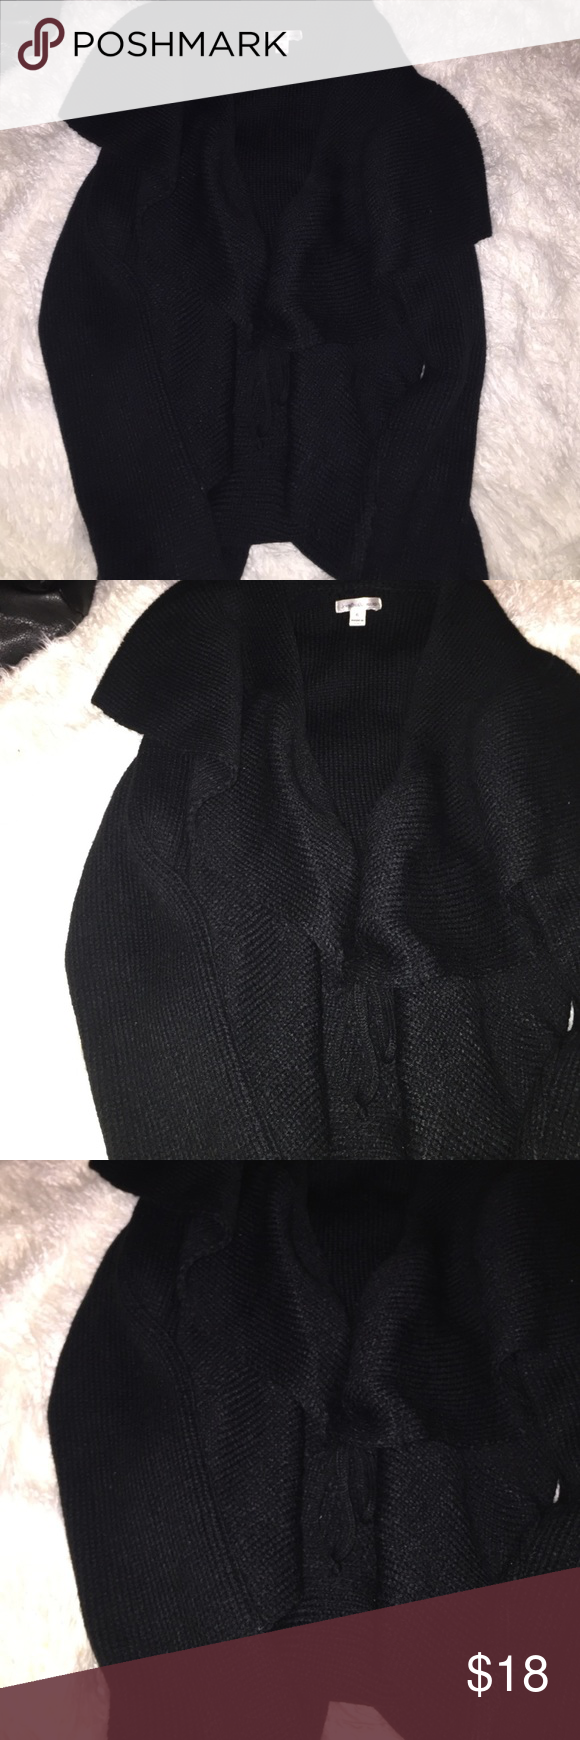 Cardigan It has a tie but u can wear it without it. Its pretty thick and perfect for winter. Fits more like a Large John Paul Richard Sweaters Cardigans